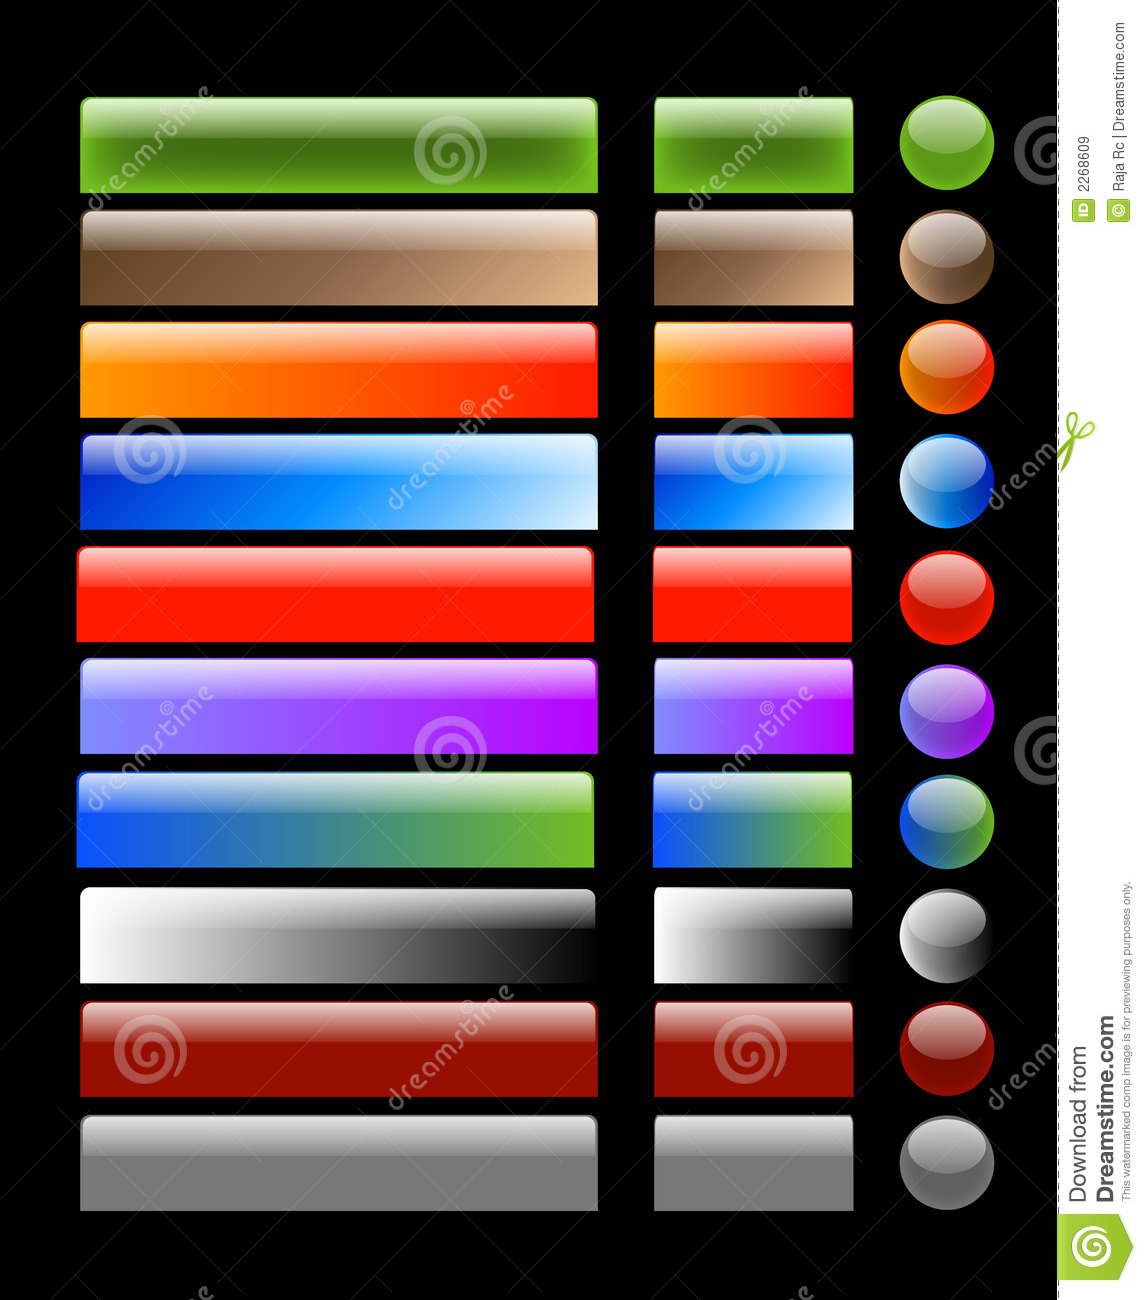 Web Buttons Royalty Free Stock Images - Image: 2268609